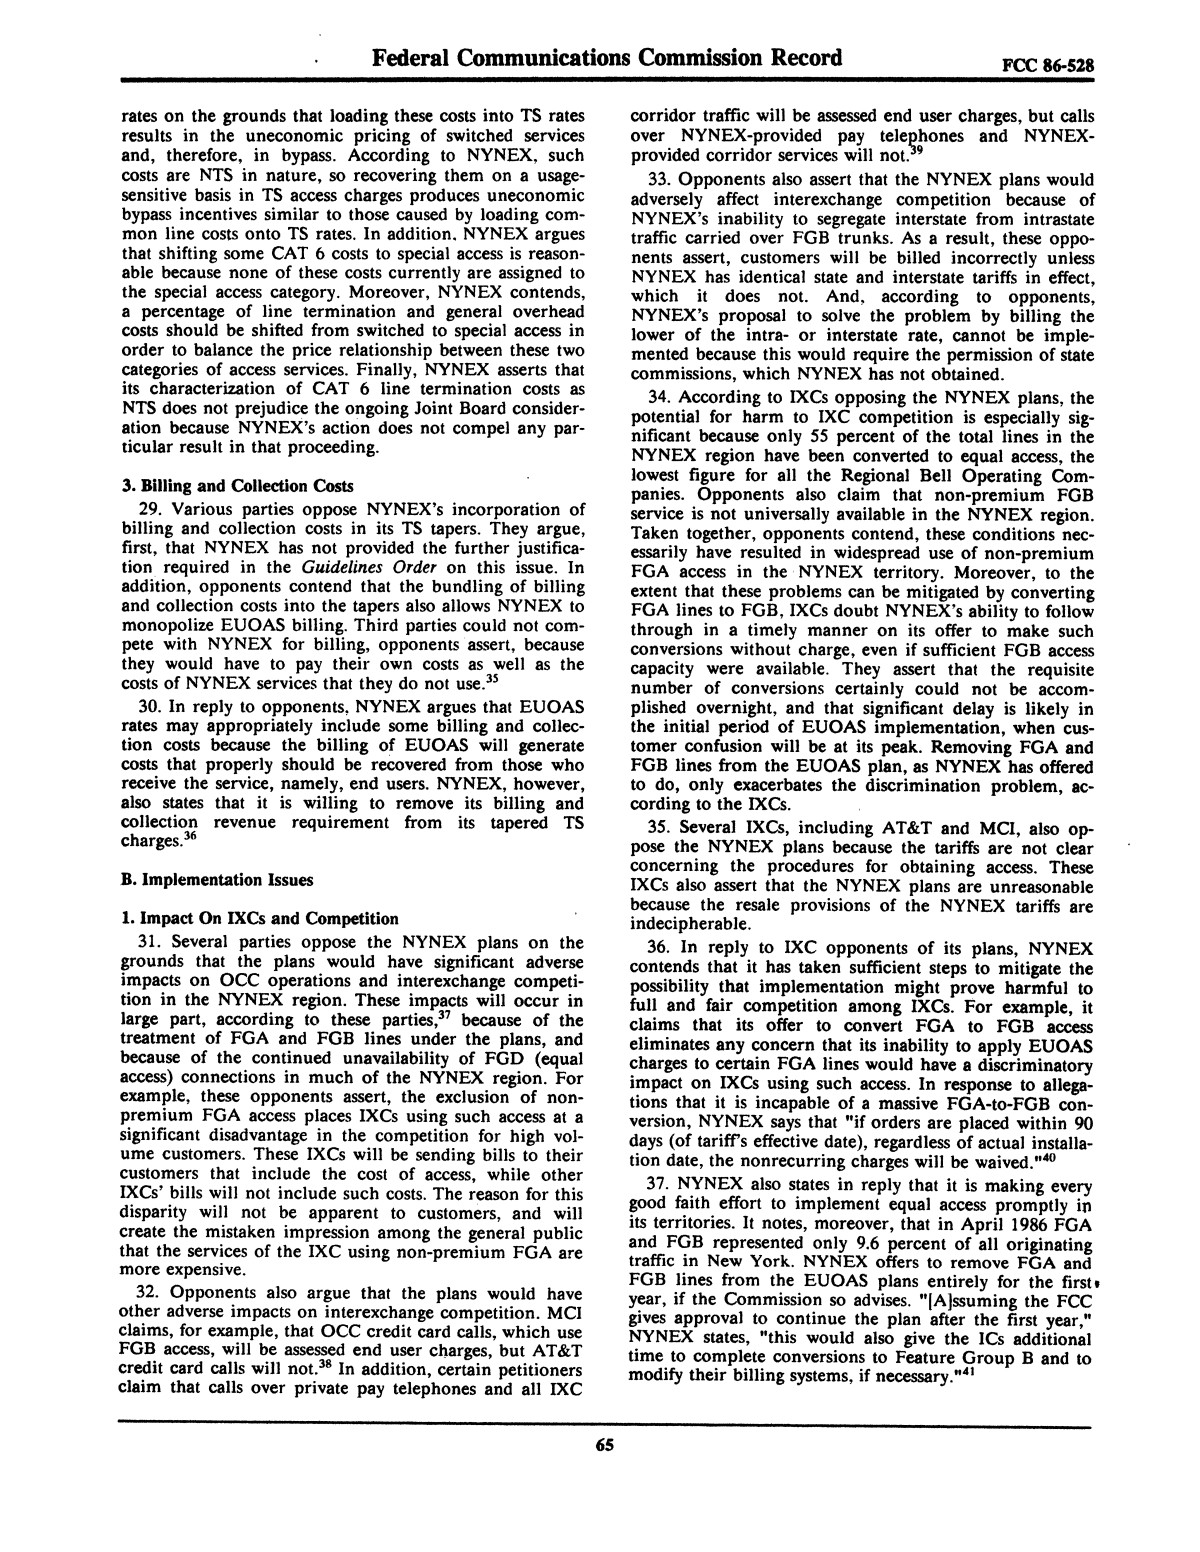 FCC Record, Volume 2, No. 1, Pages 1 to 409, January 5 - January 16, 1987                                                                                                      65